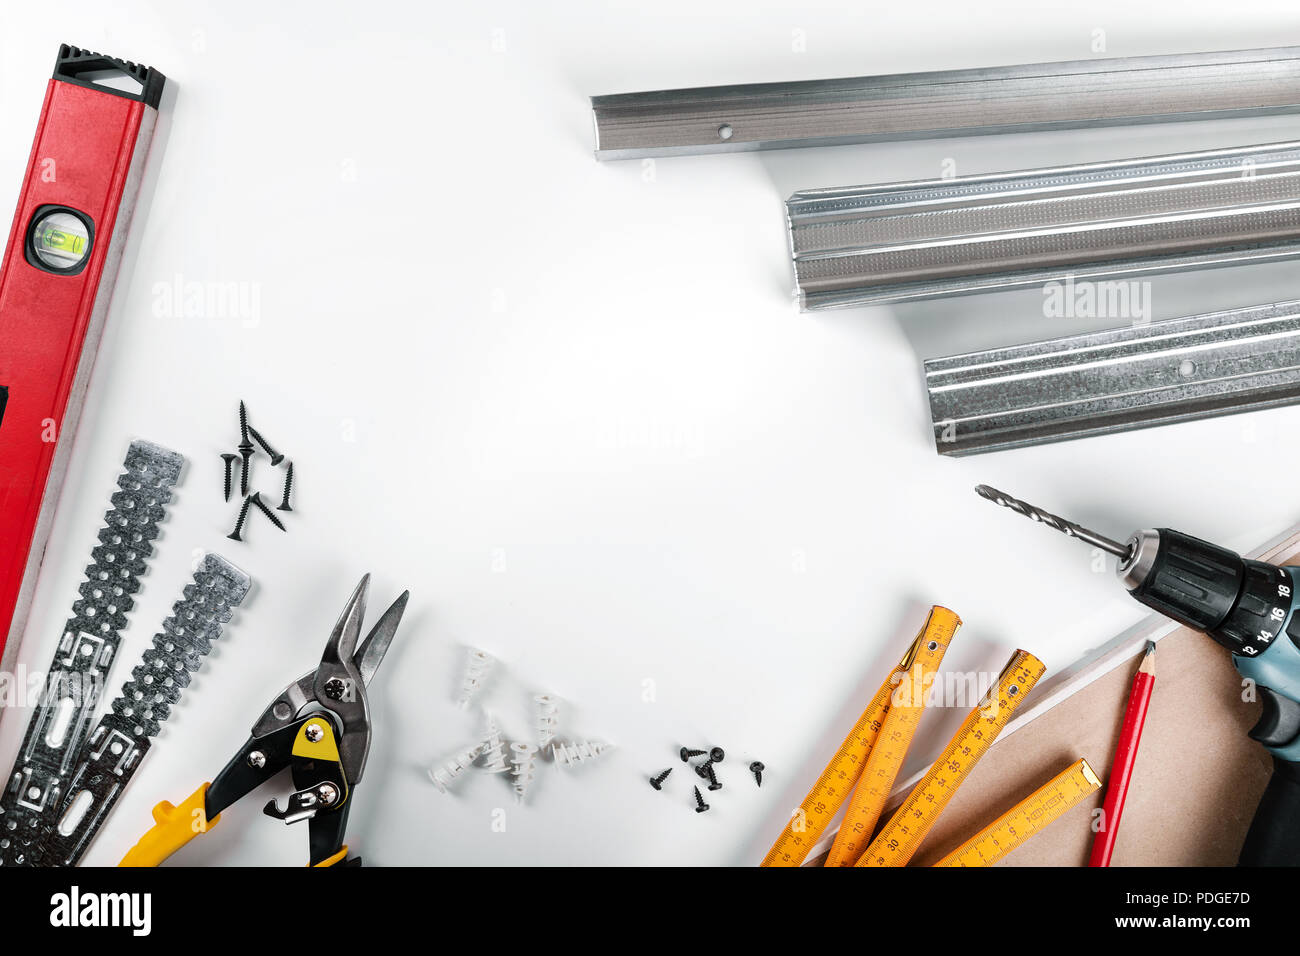 drywall mounting tools and fasteners on white background. top view - Stock Image